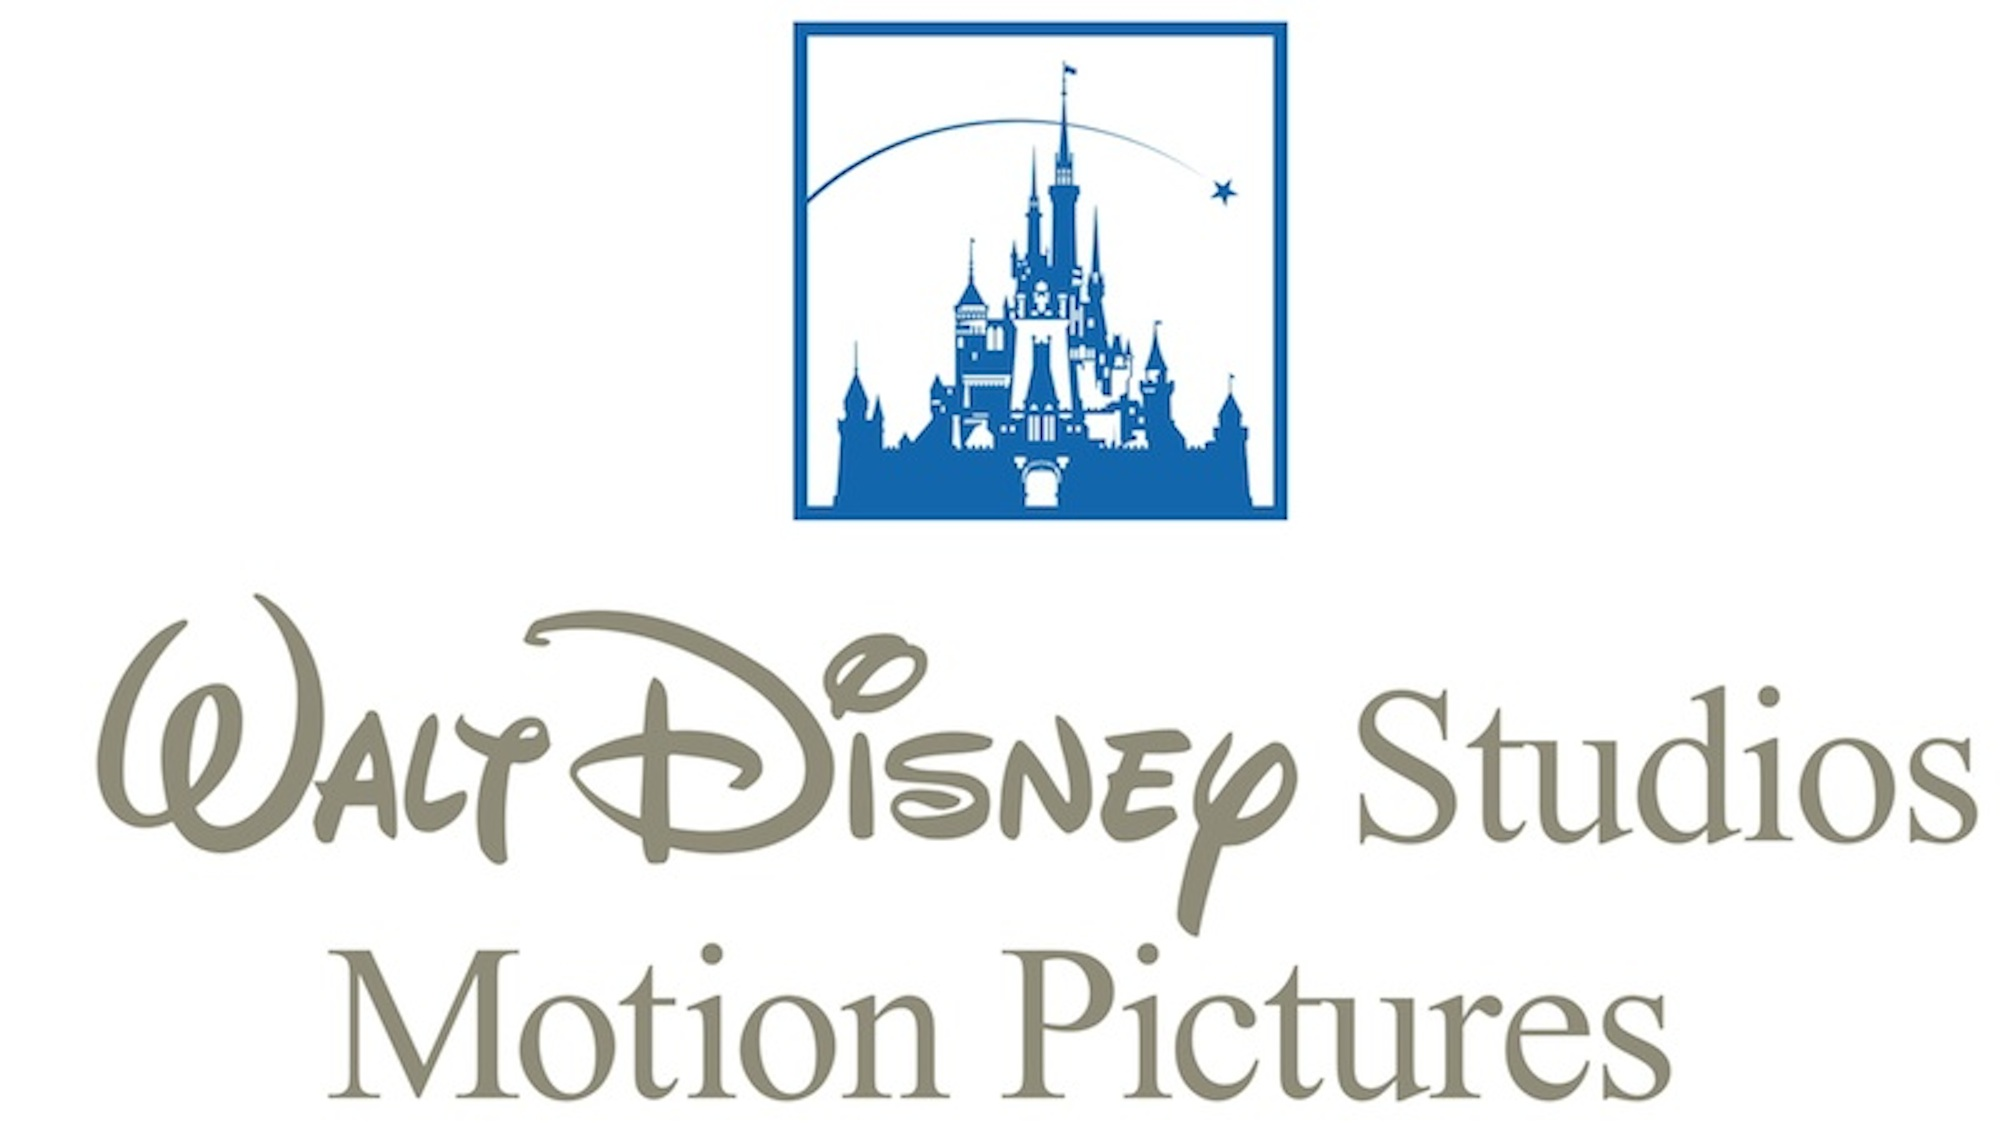 walt disney advertising budget The walt disney company faces strong competition from other media conglomerates, such as viacom (who is starting its own animation feature film arm soon) and time warner, cbs, and nbc.